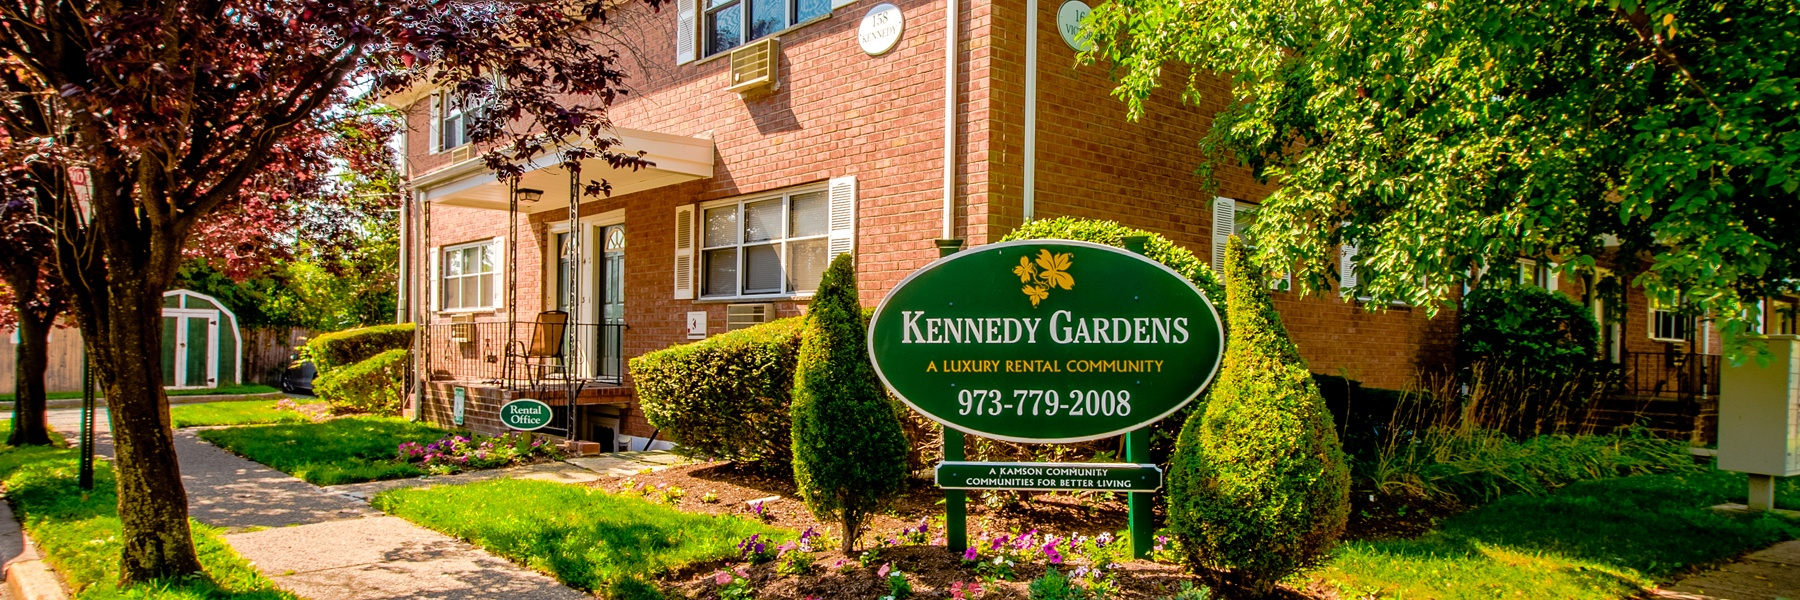 Kennedy Garden Apartments For Rent in Lodi, NJ Welcome